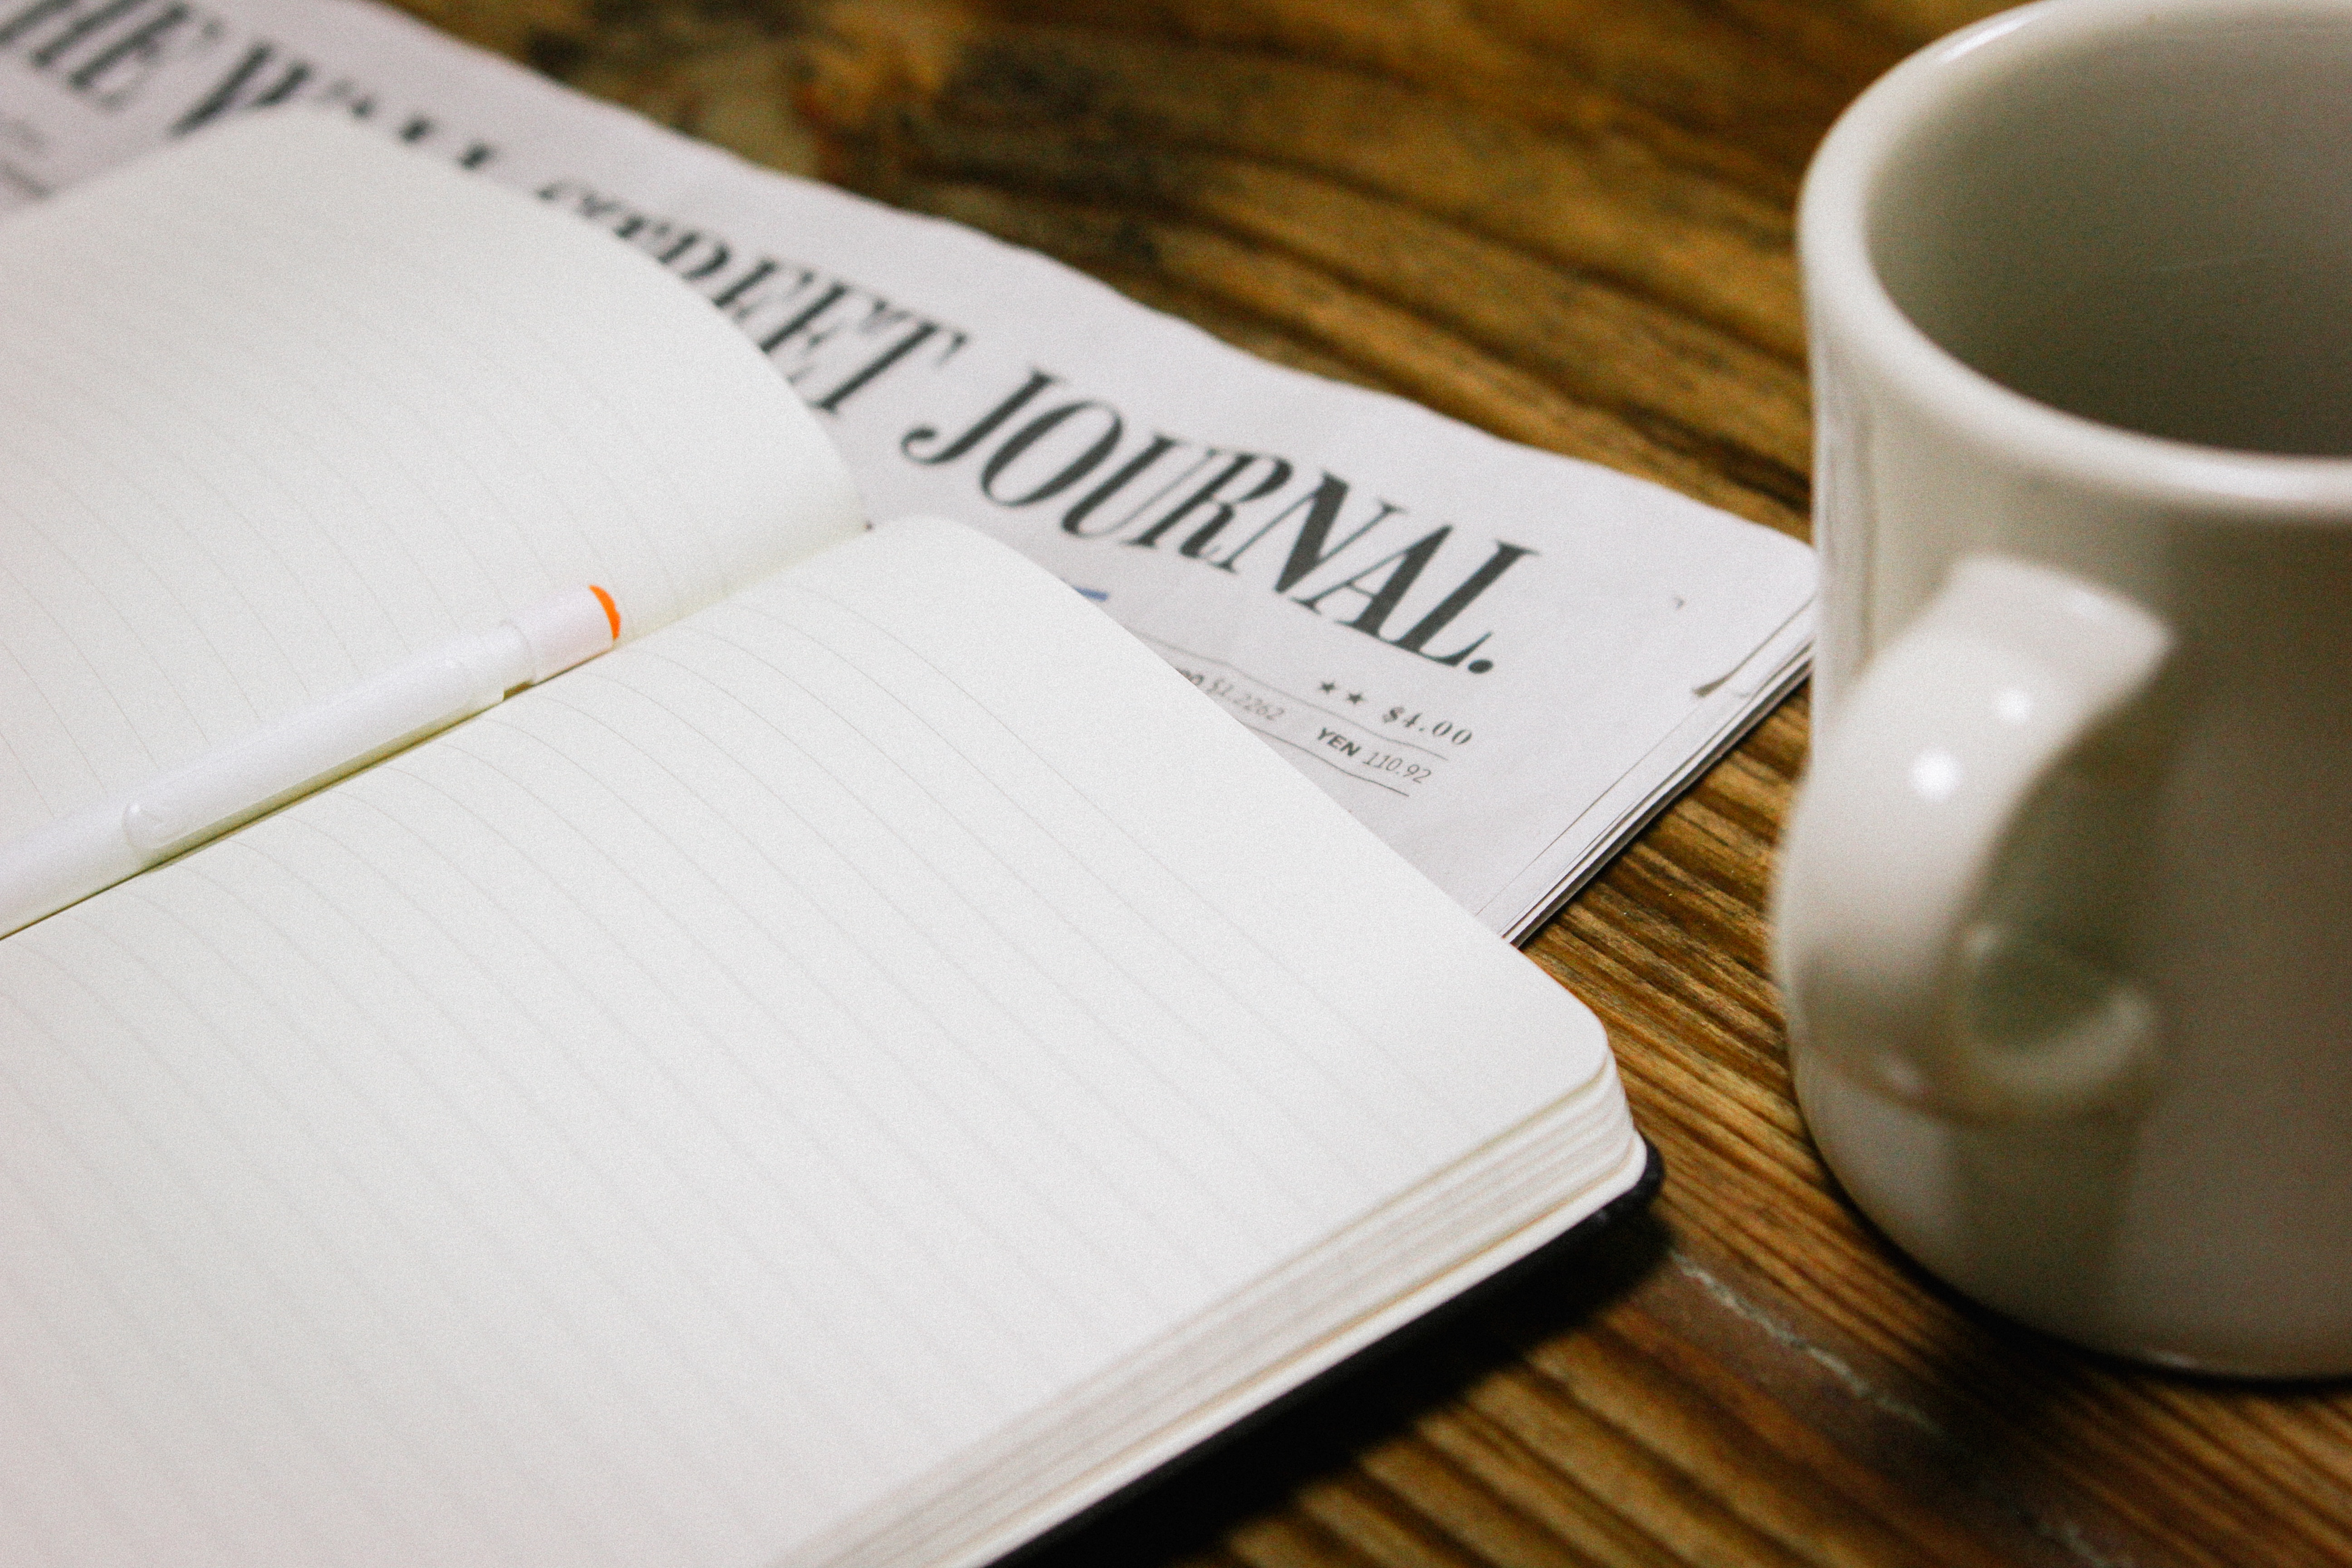 Open notebook with pen laying on top of a copy of the Wall Street Journal, with a white mug to the side.